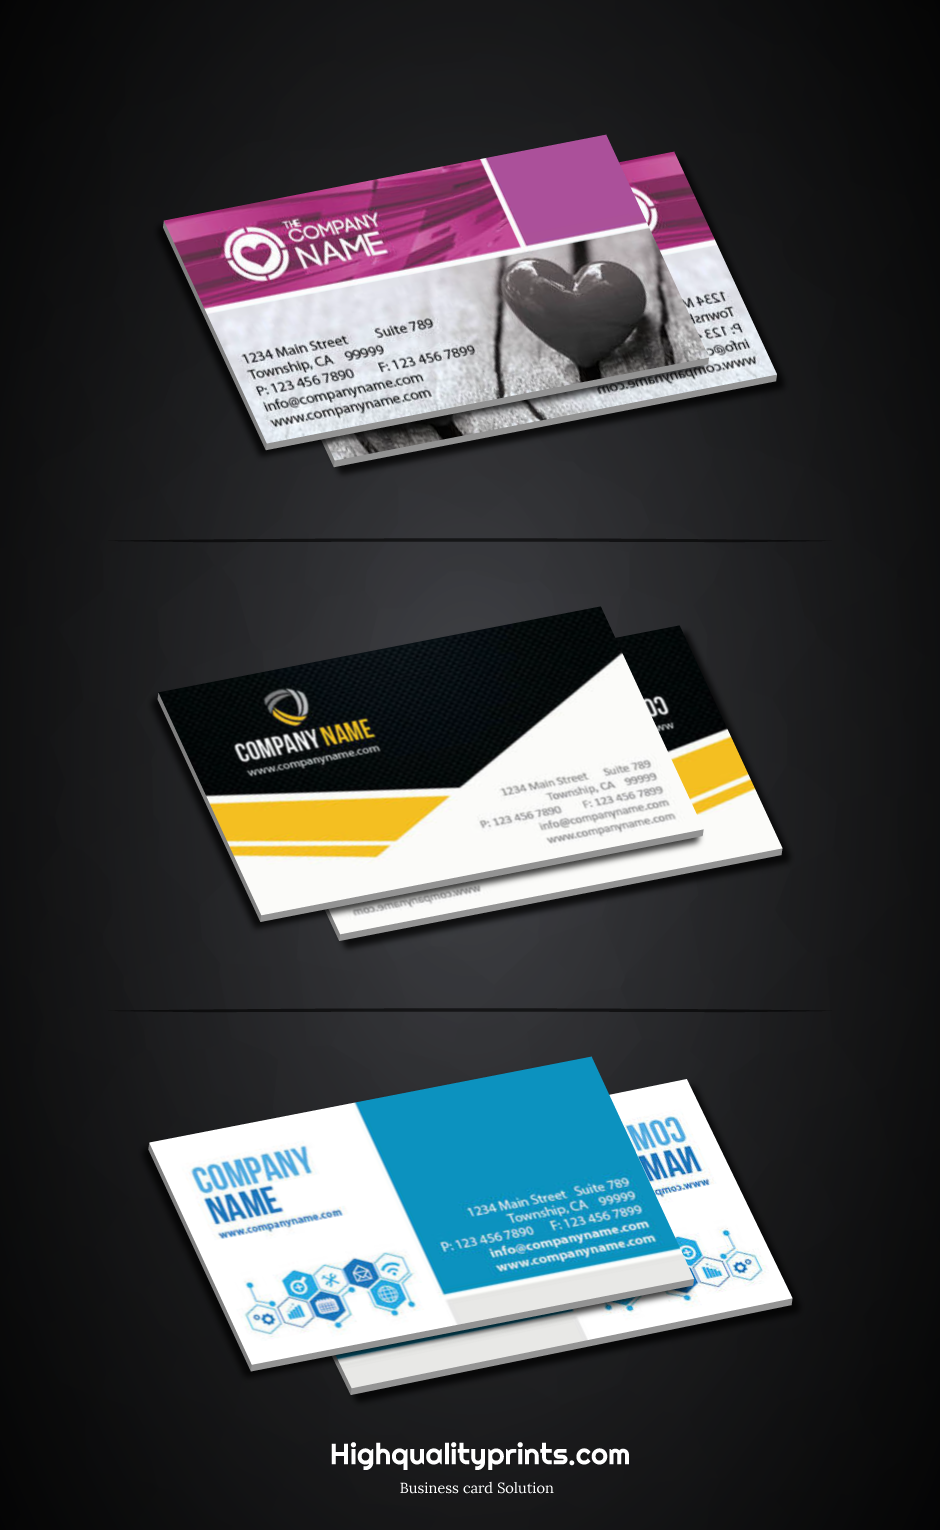 Get High Quality Business Cards That Represent Your Brand Identity Make Better Impre Business Cards Creative Business Card Design High Quality Business Cards